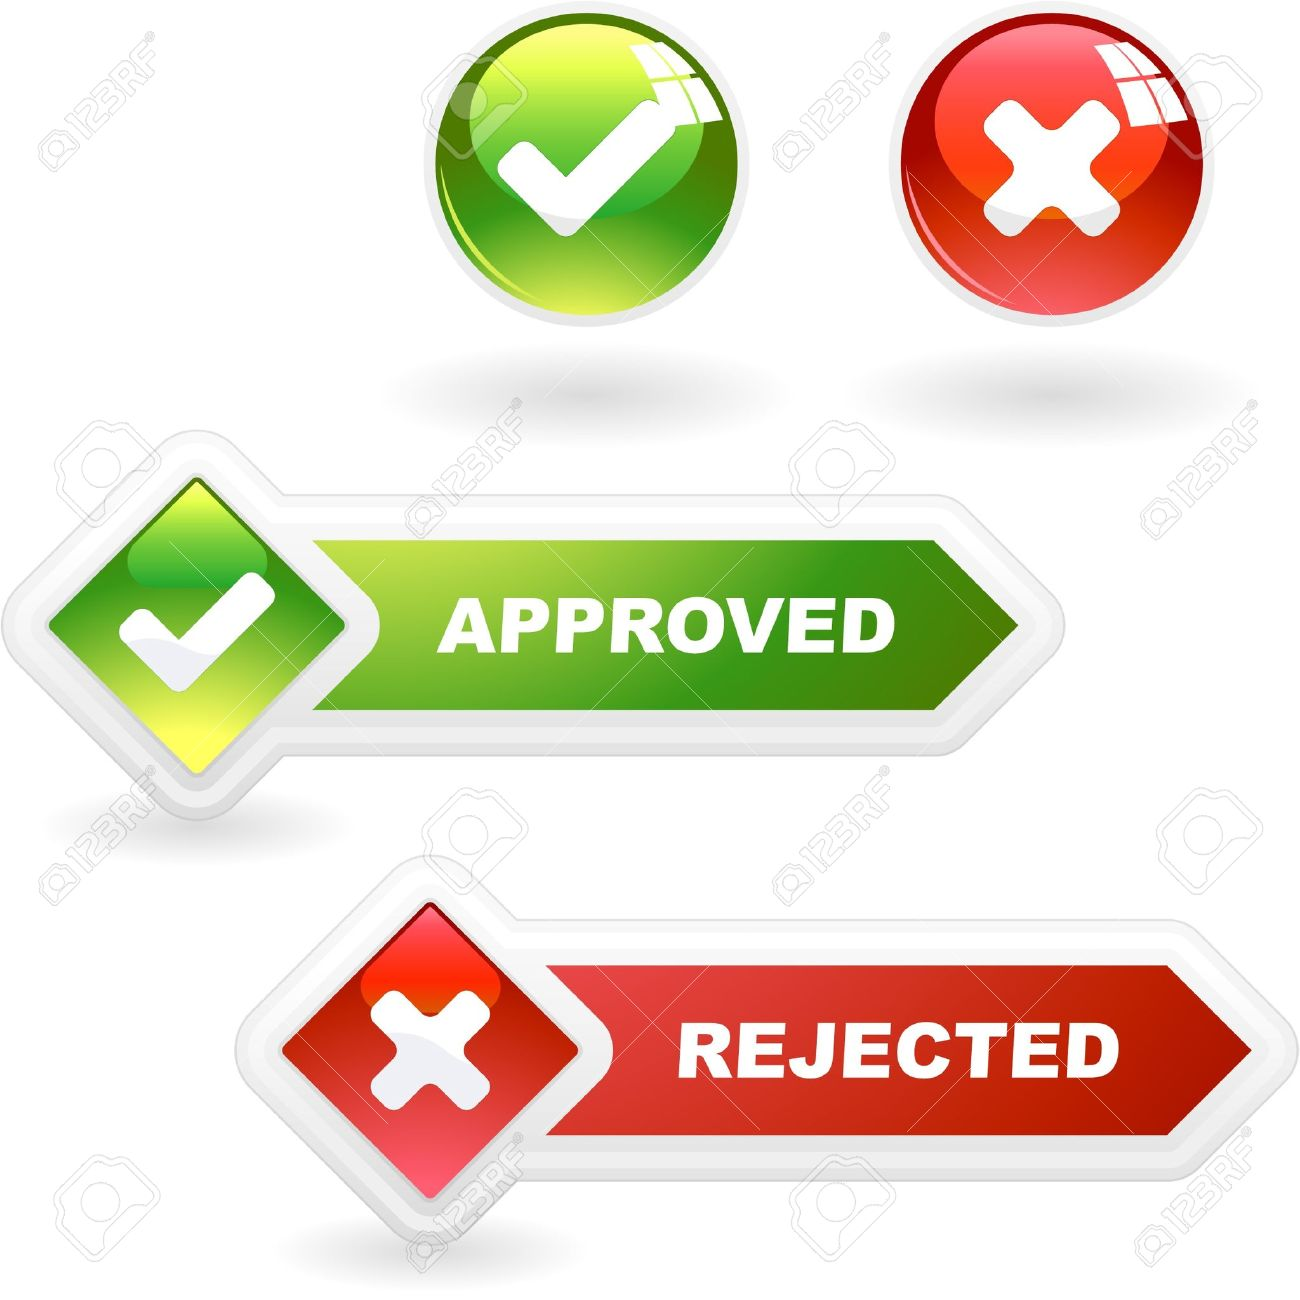 Approved And Rejected Button Set. Royalty Free Cliparts, Vectors.